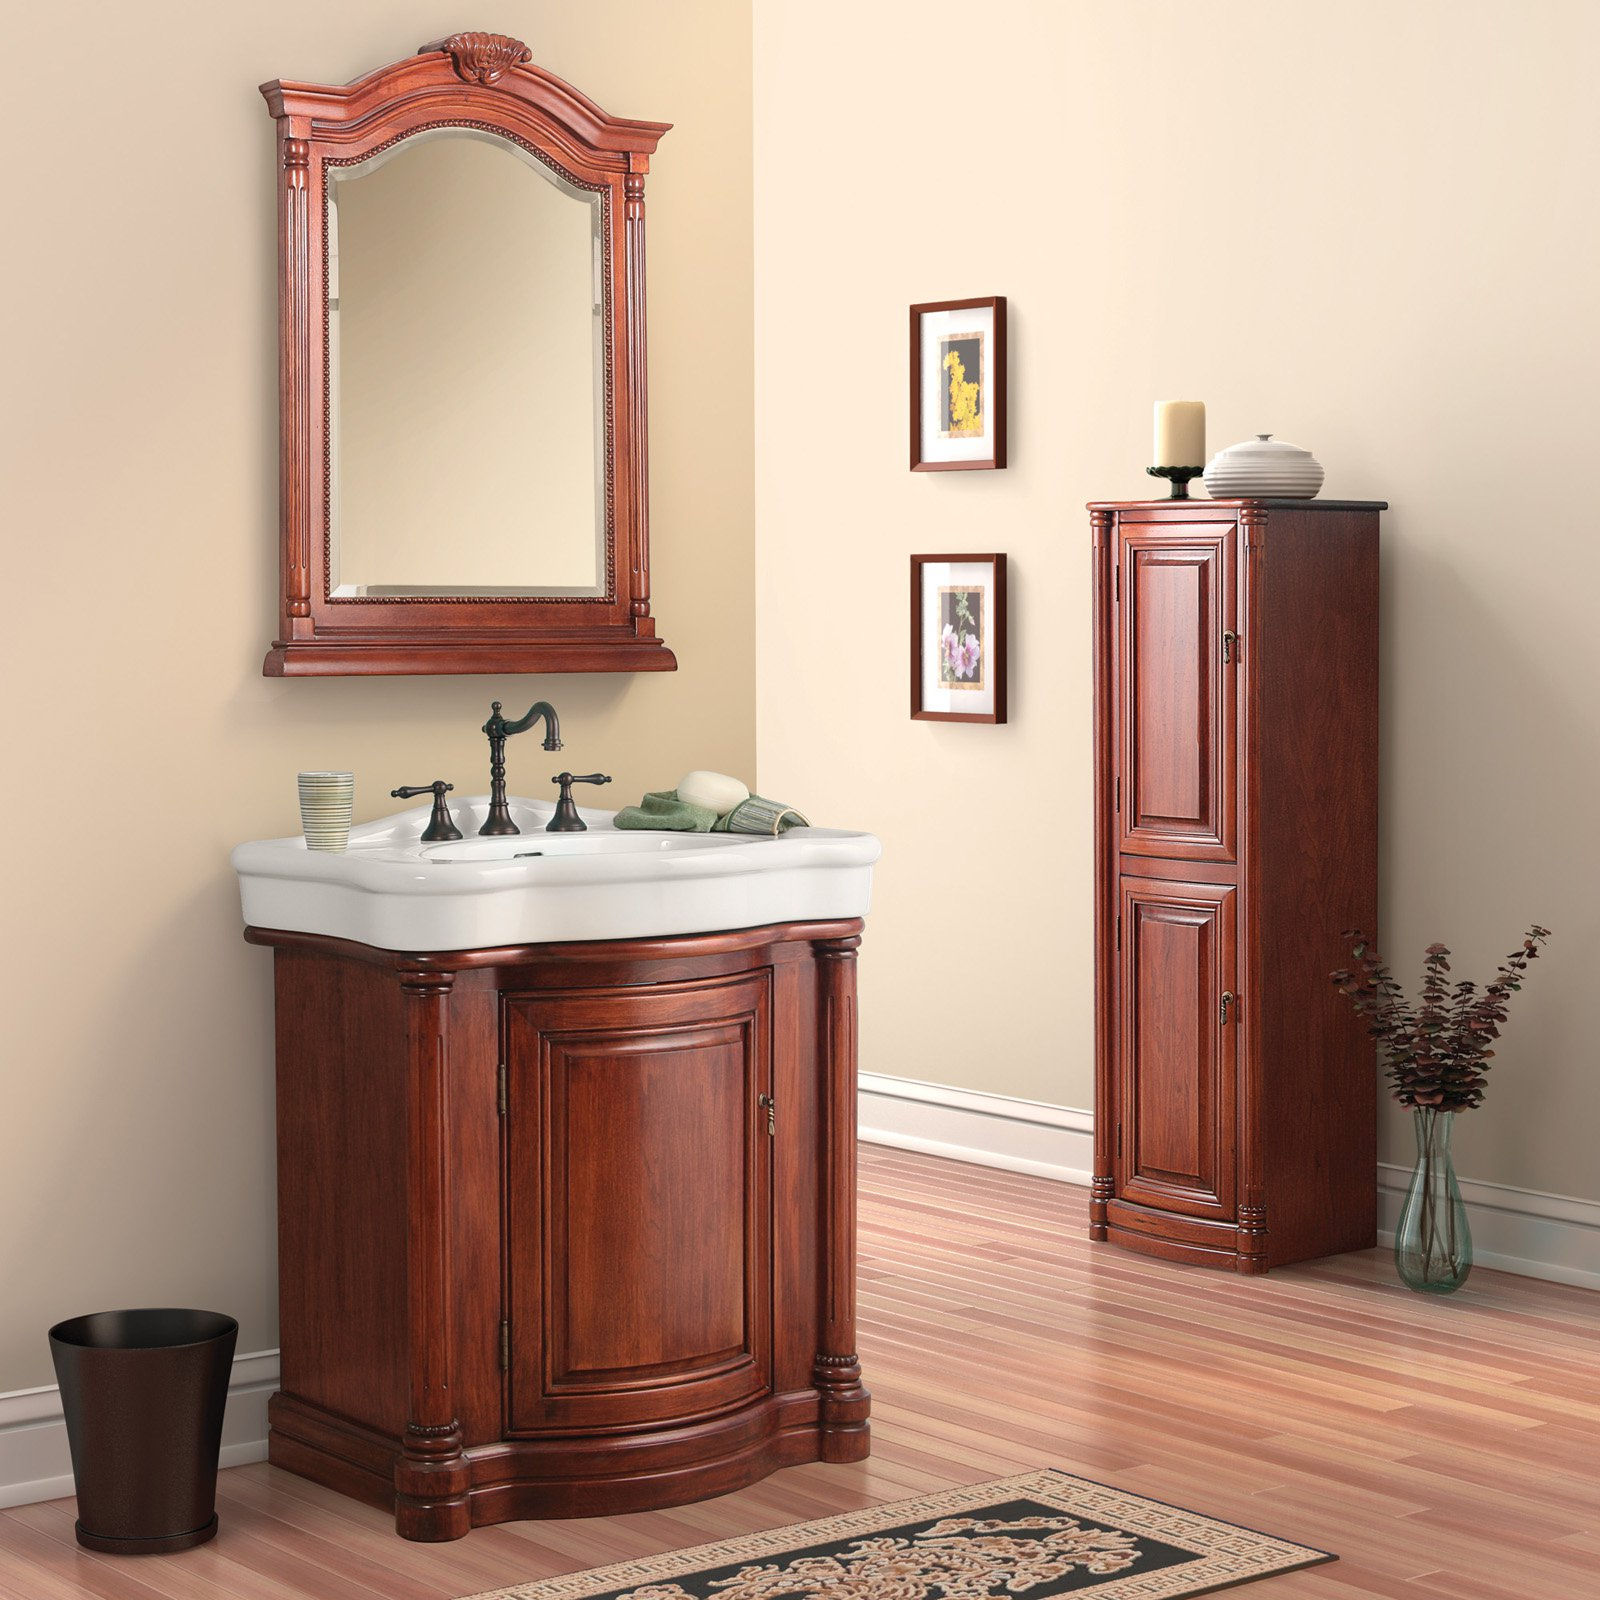 Foremost Wingate Bathroom Floor Cabinet